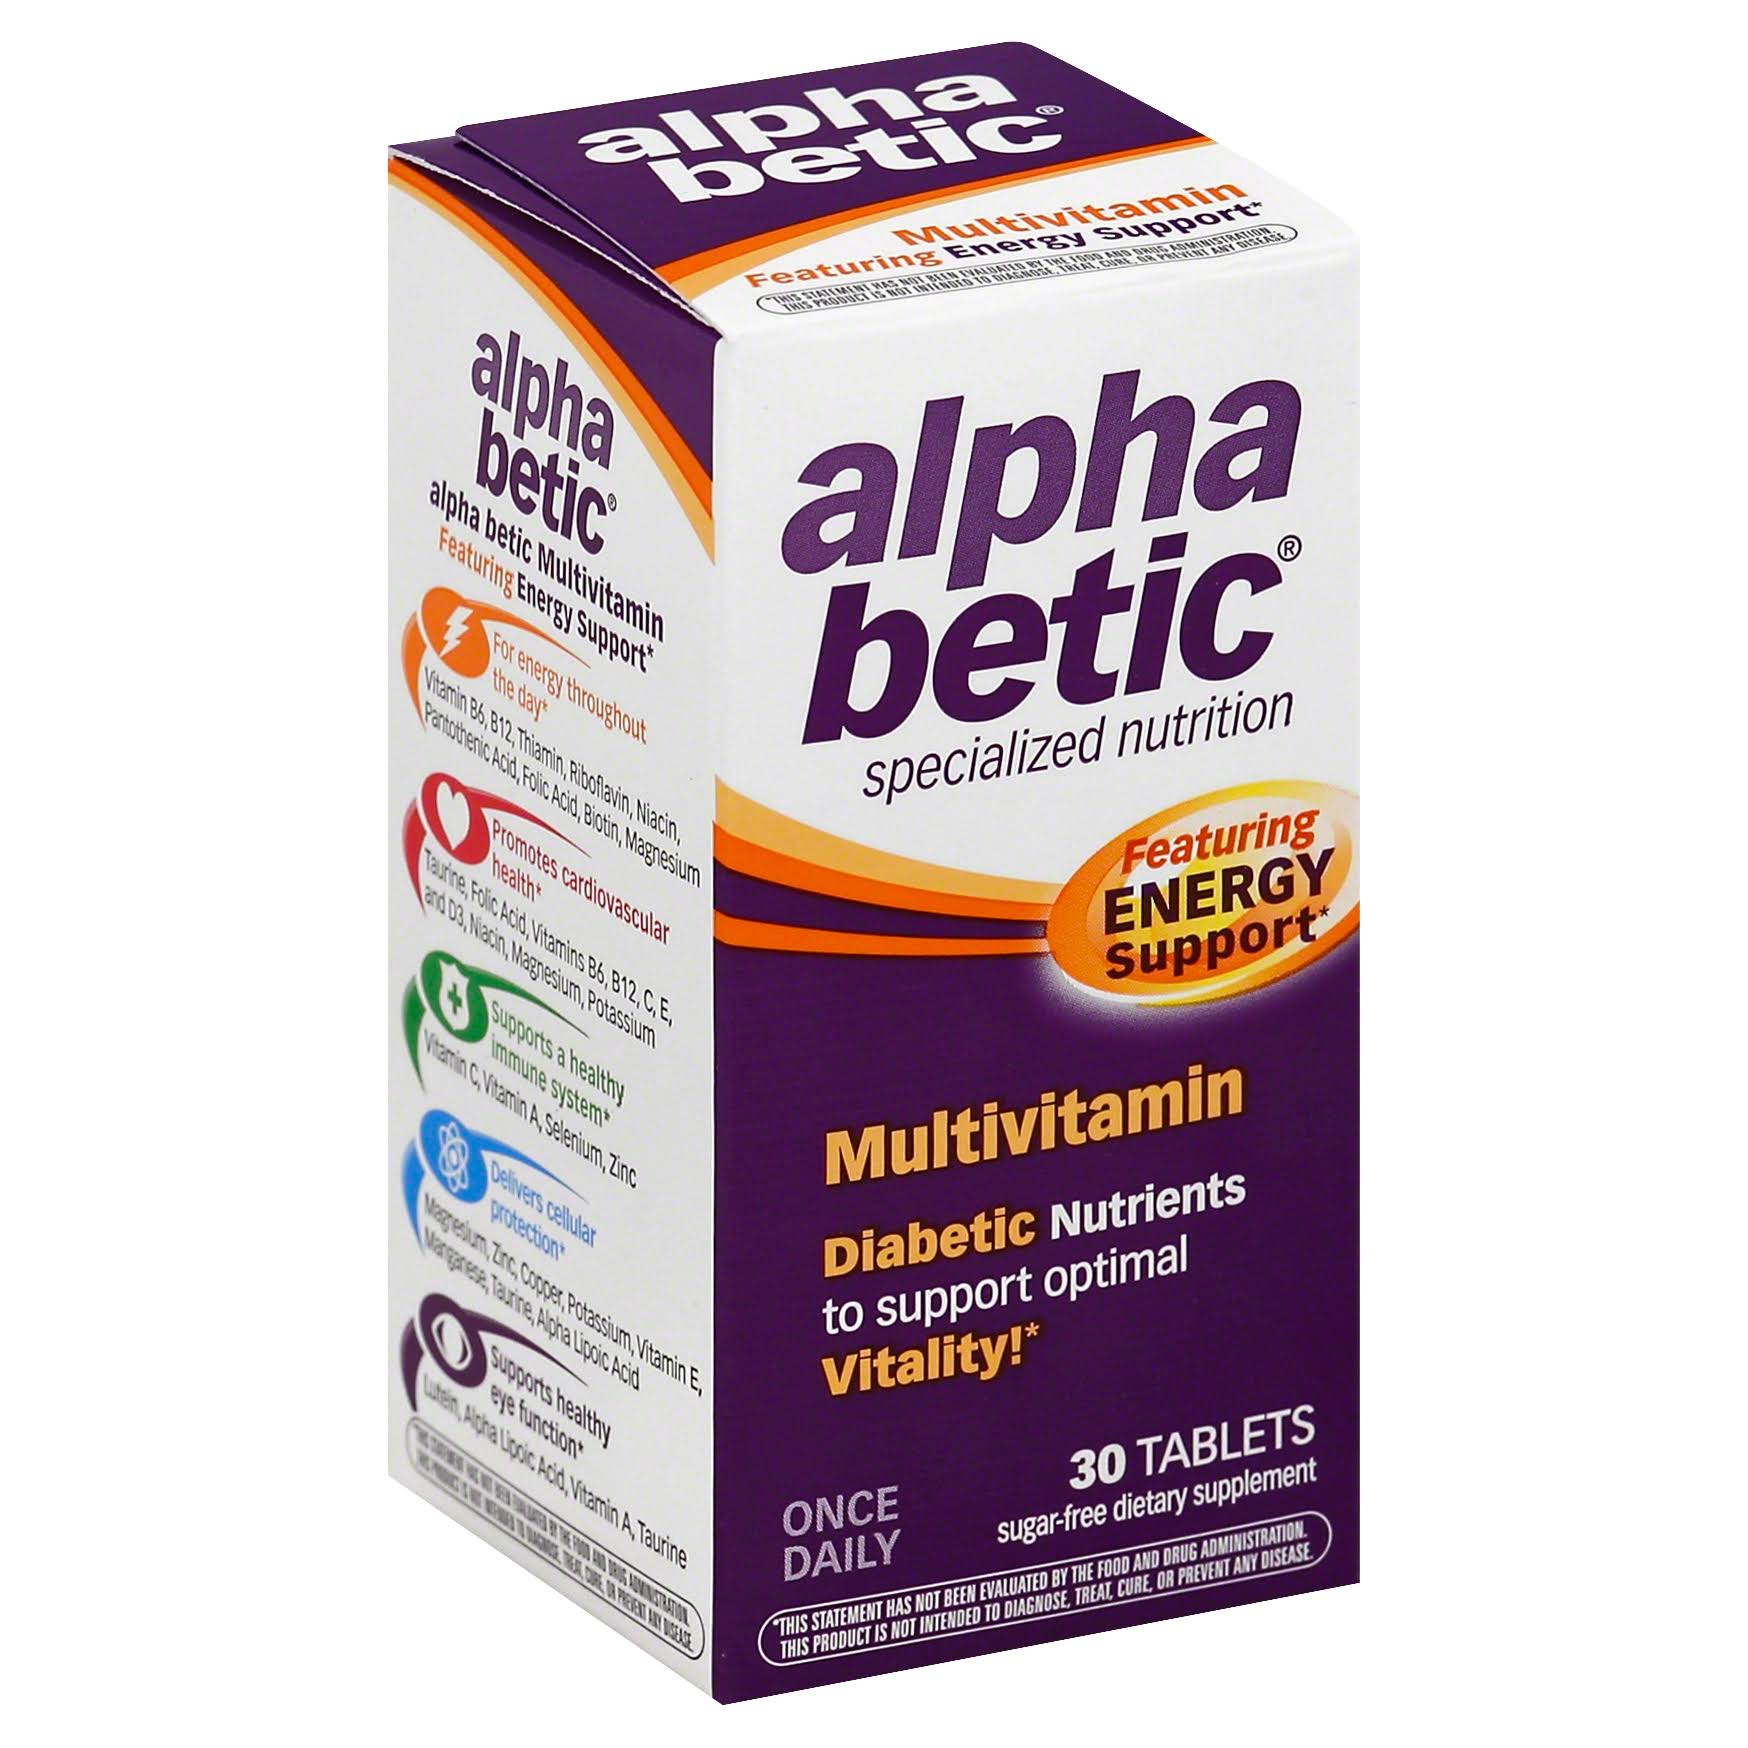 Alpha Betic Multi-Vitamin Supplement - 30 Tablets